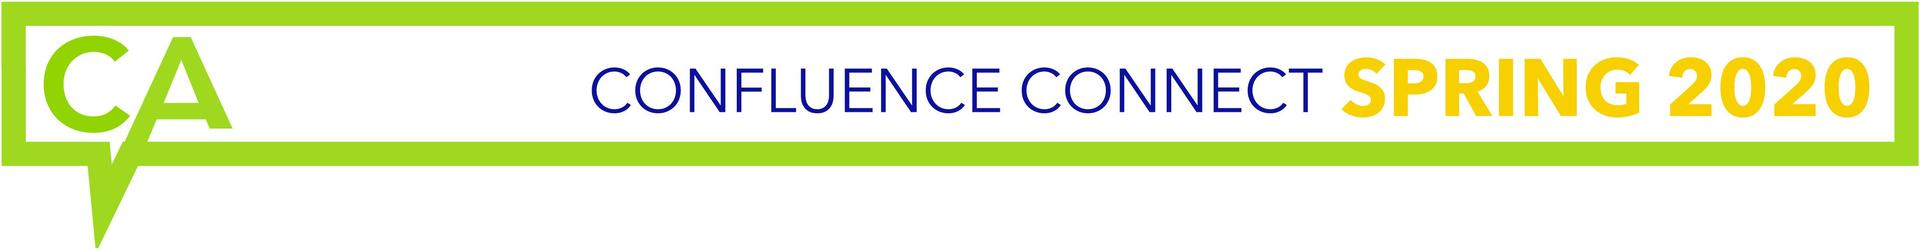 Confluence Connect Spring 2020